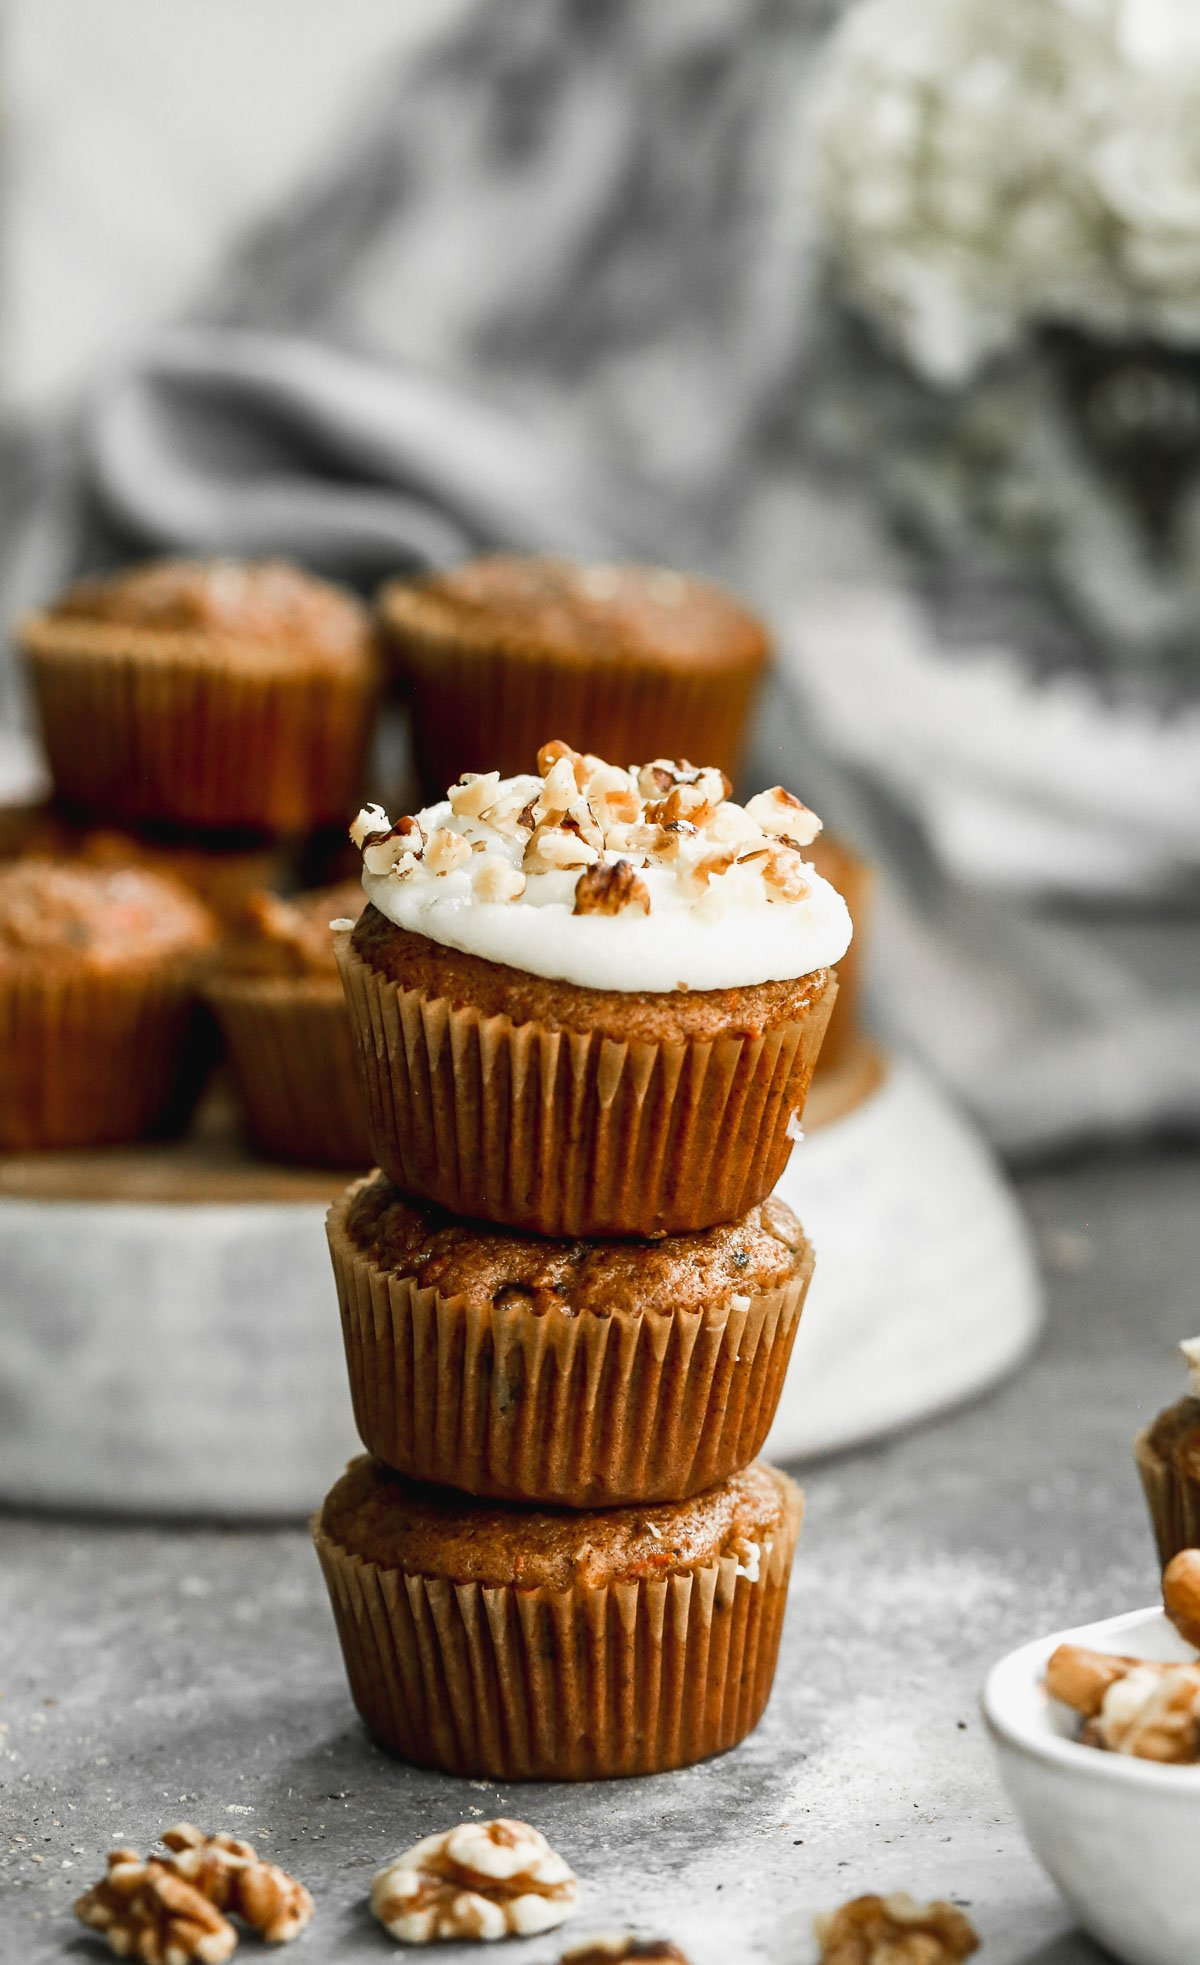 Loaded-Carrot-Cake-Cupcakes-Recipe-The-Law-Students-Wife